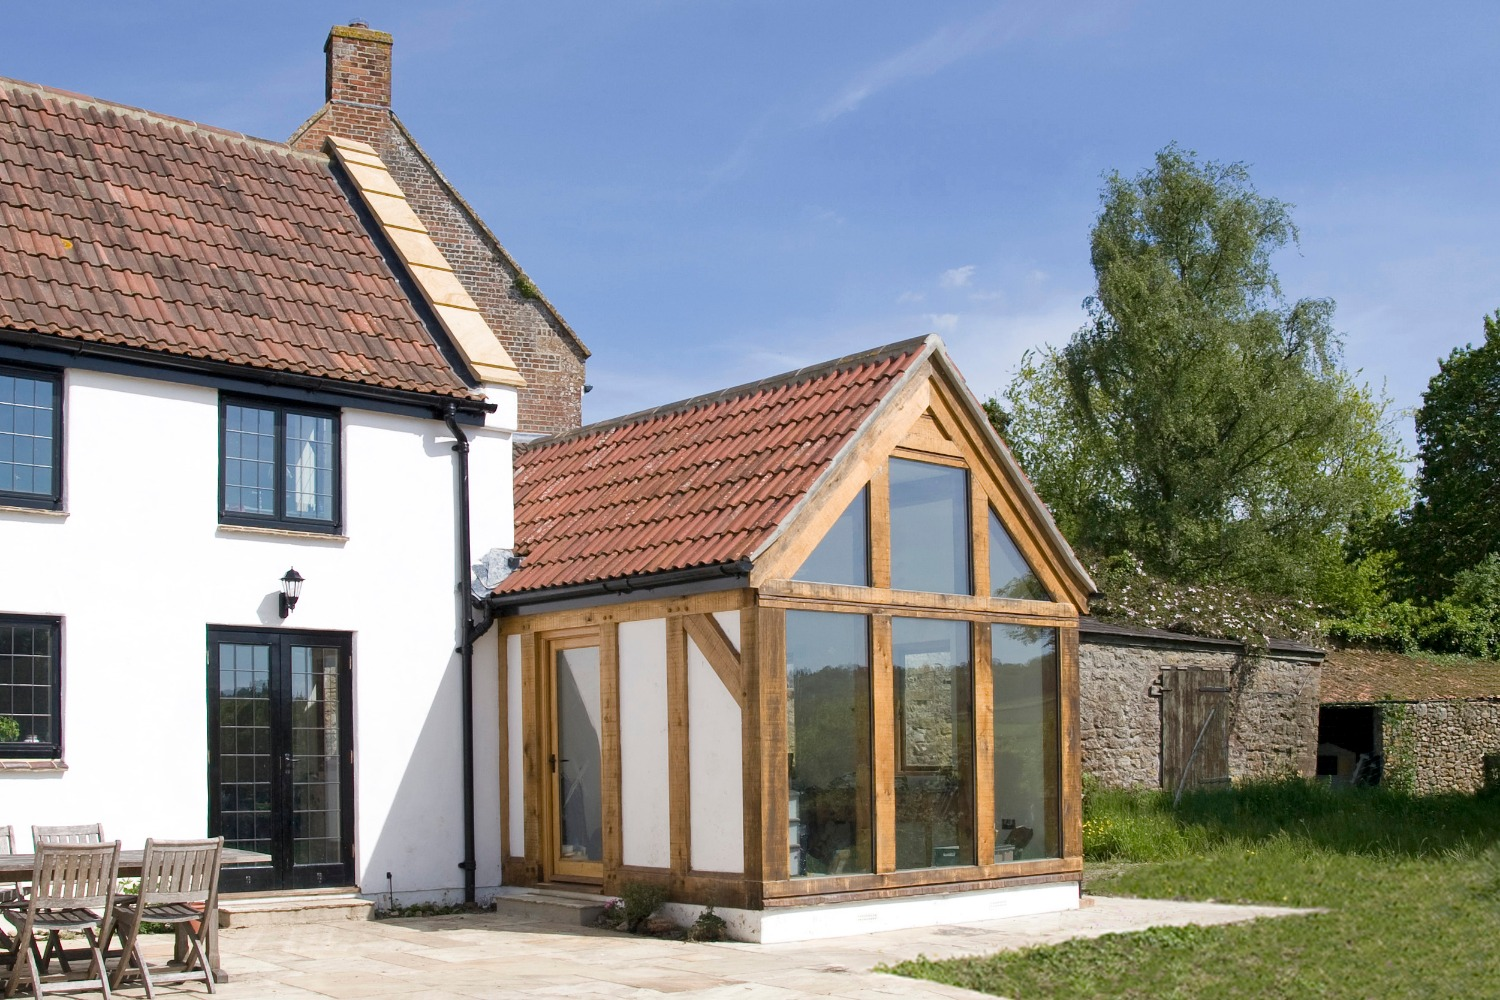 Conservation & extensions to a listed house near Ilminster, Somerset - timber frame garden room